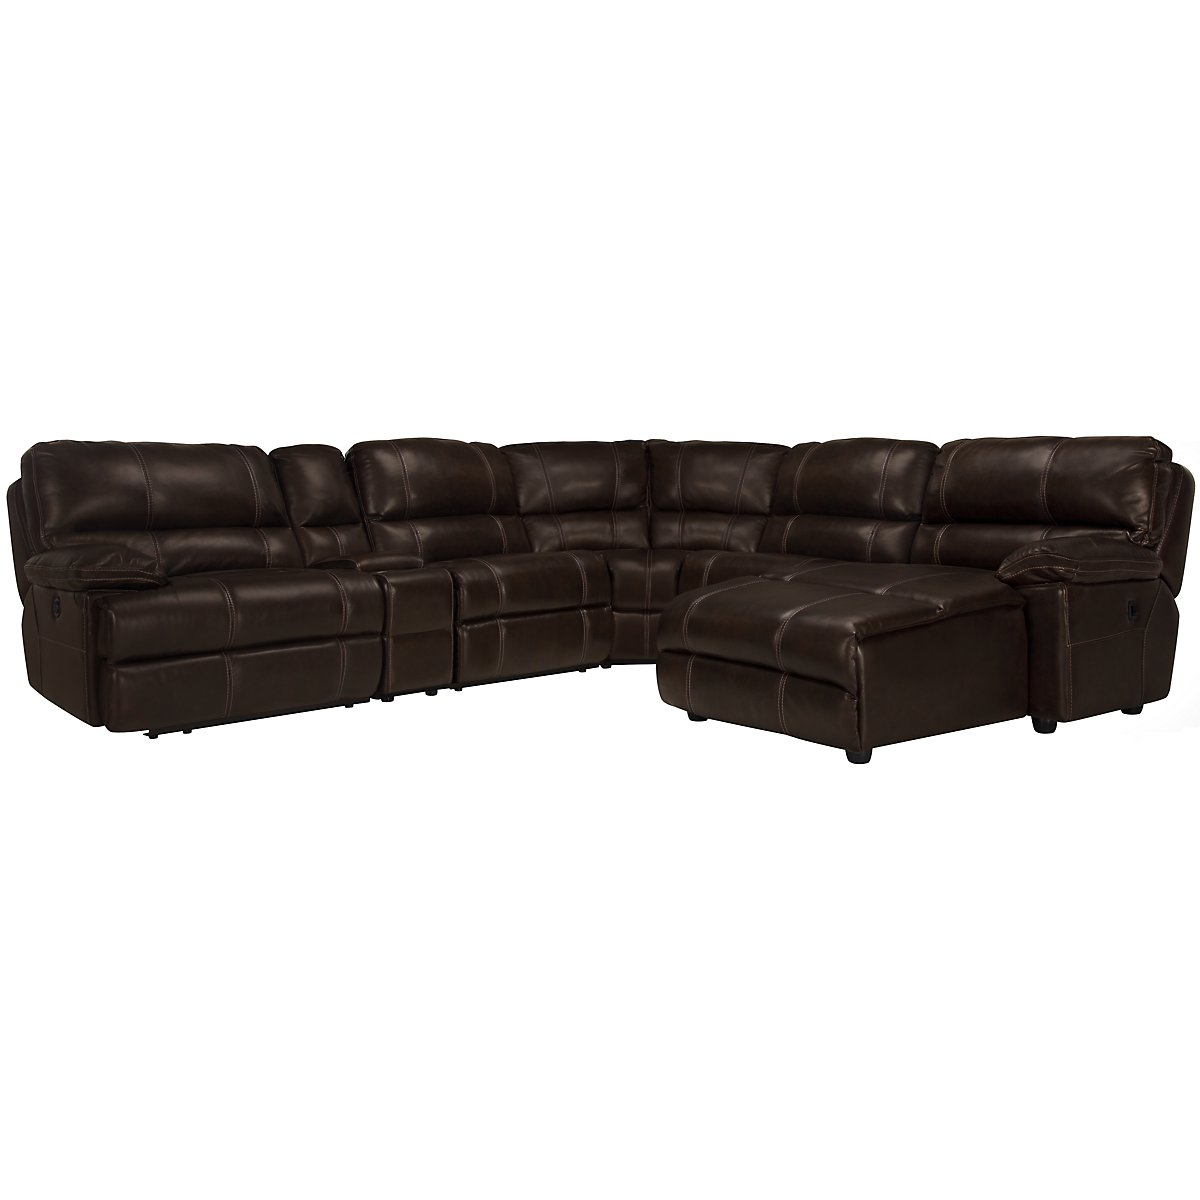 Alton2 Dk Brown Leather & Vinyl Right Chaise Manually Reclining Sectional